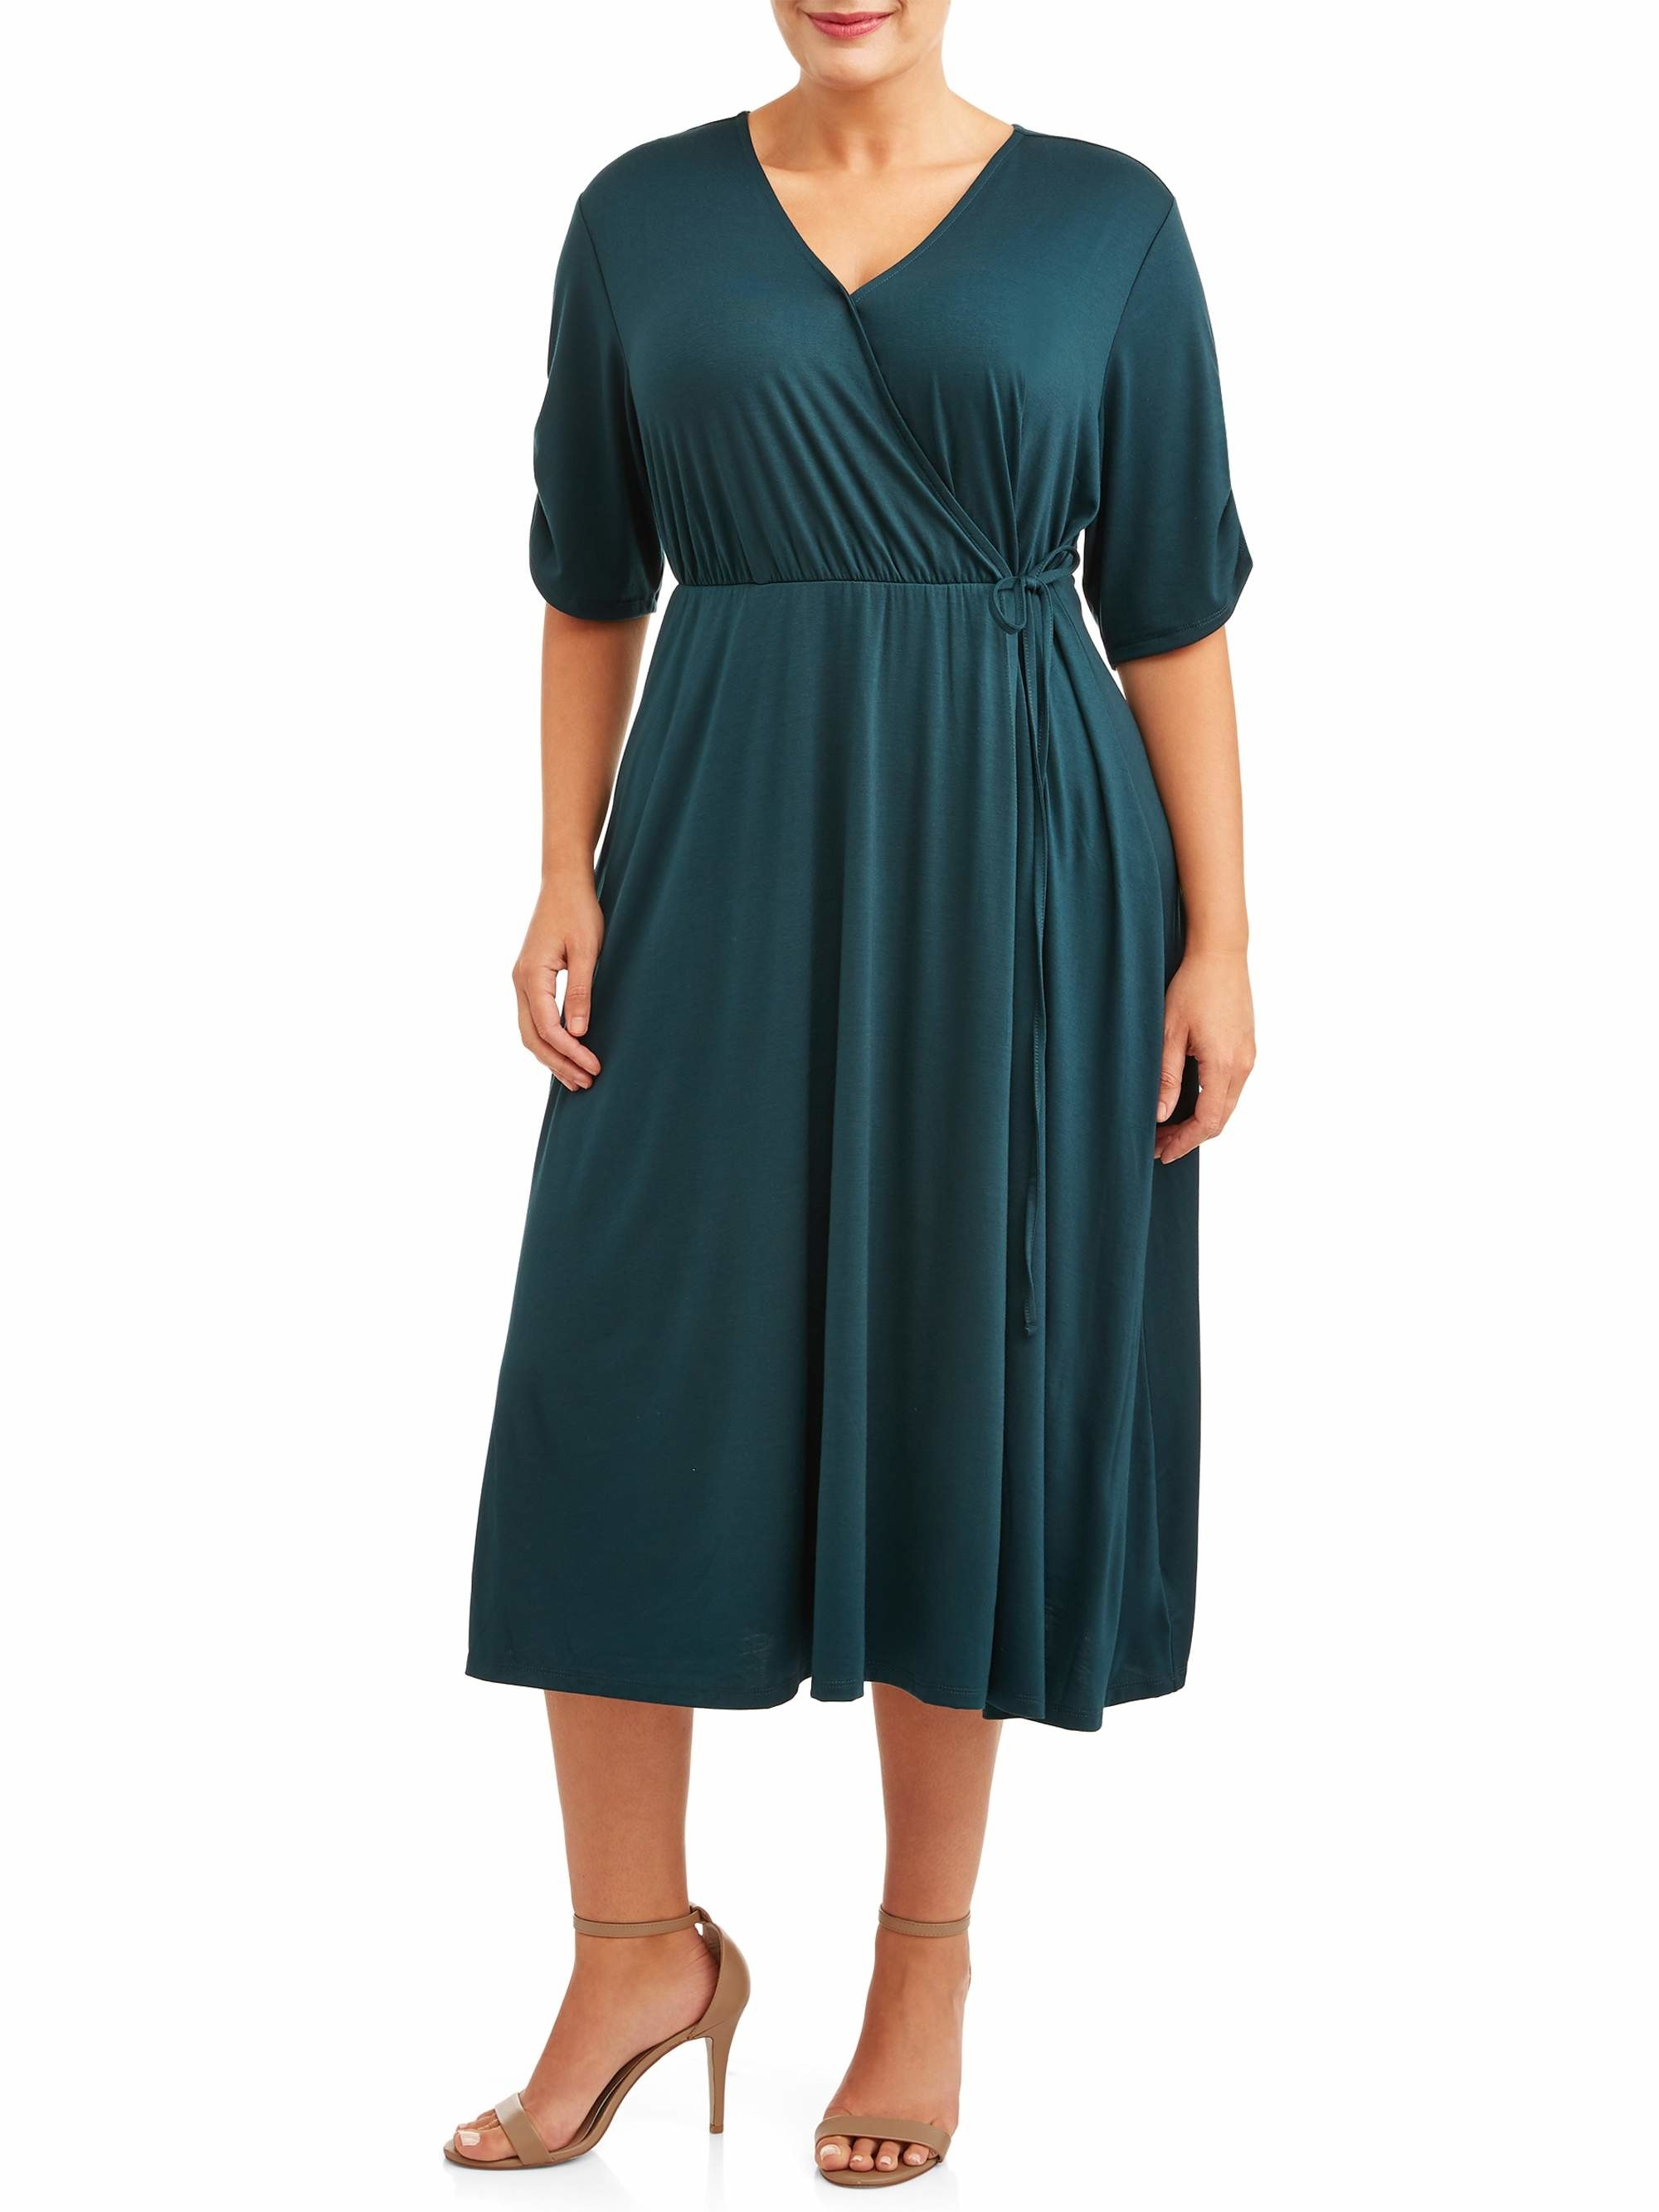 The teal midi wrap dress